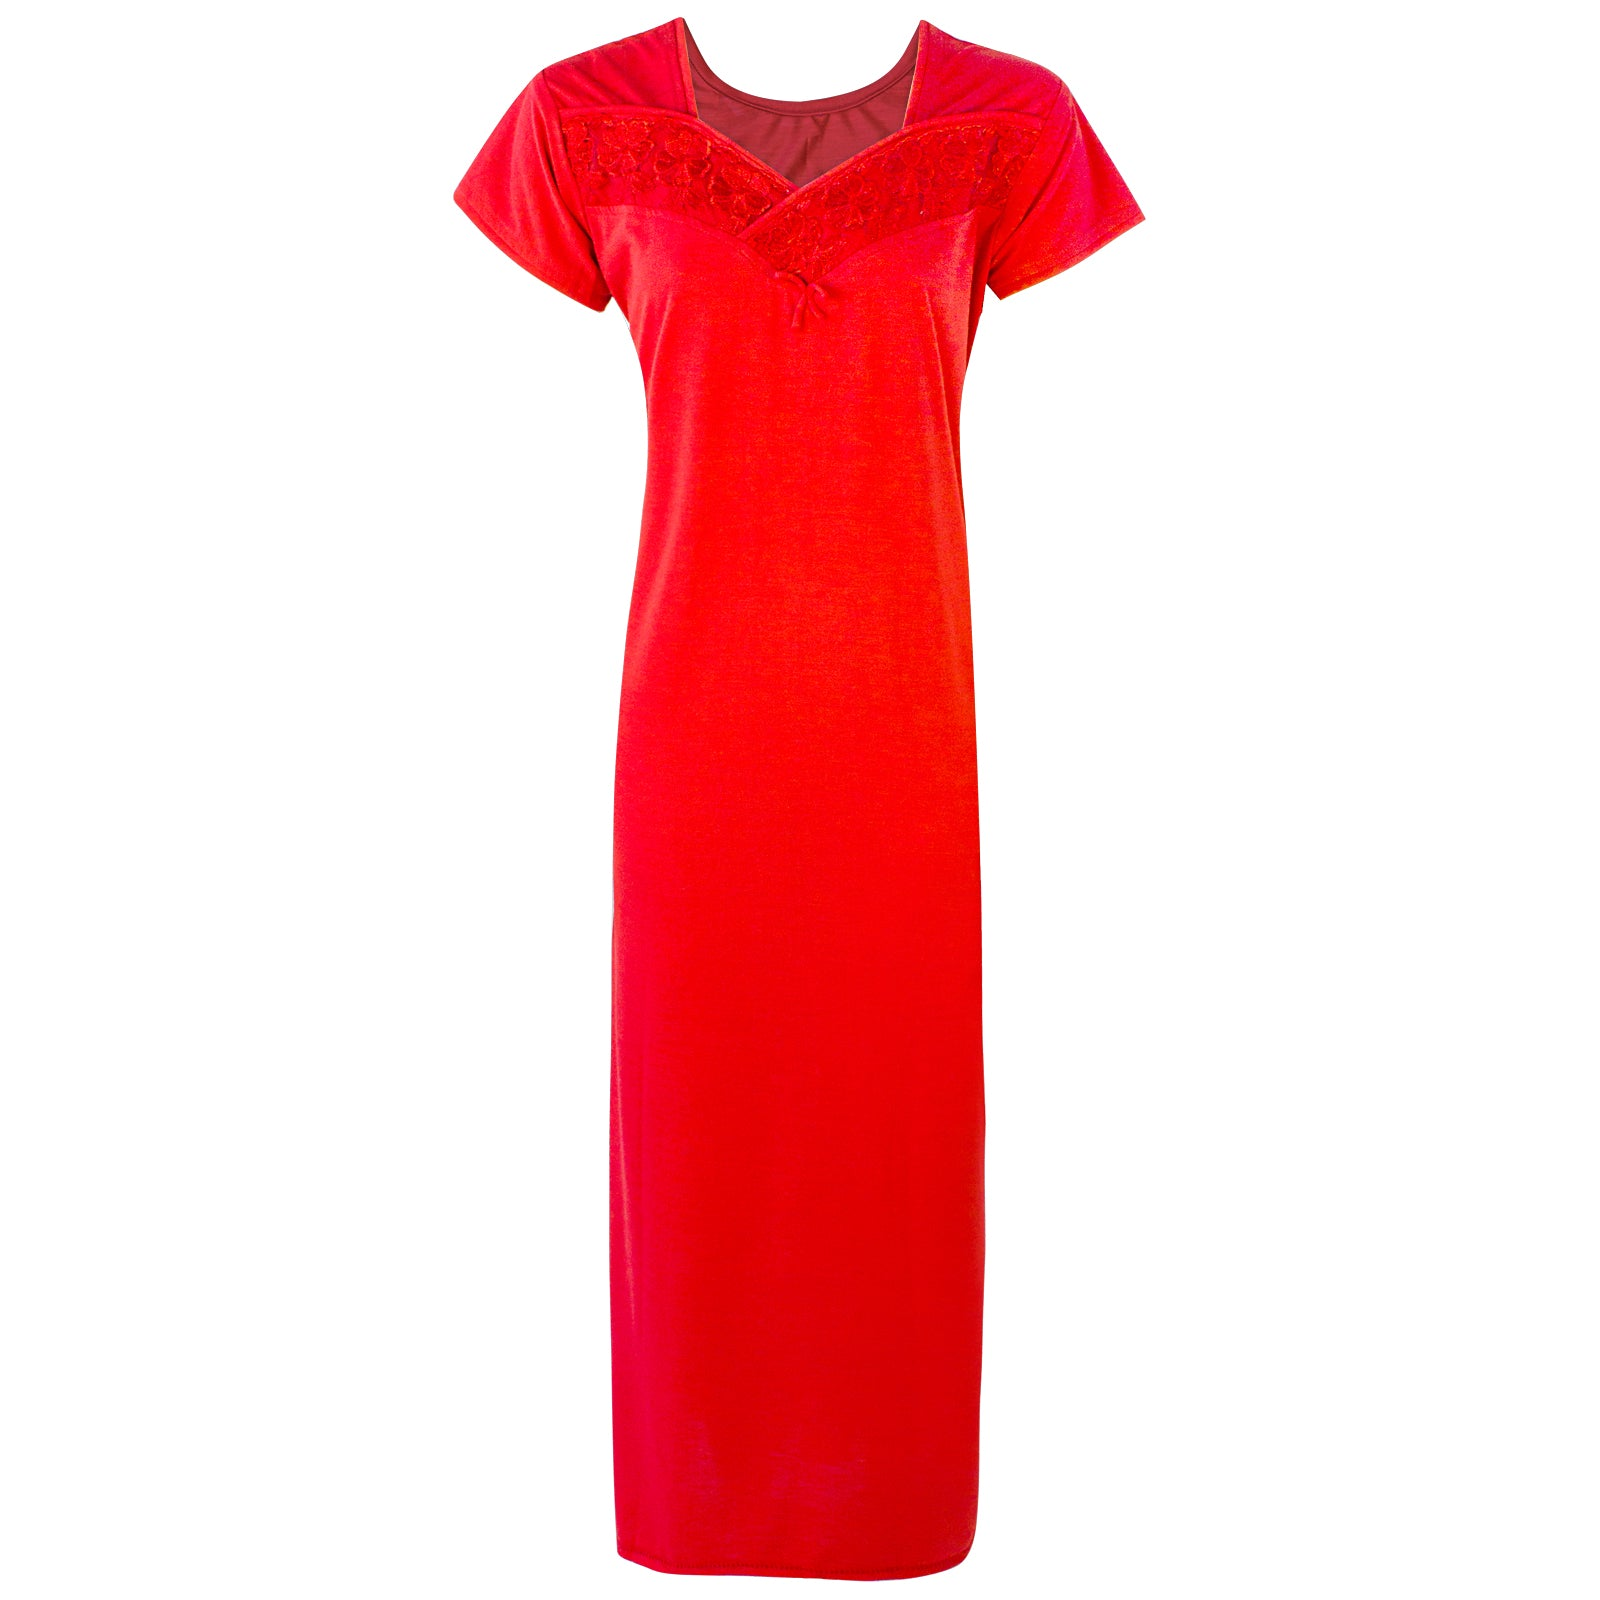 Colour: Red Cotton Blend Comfy Jersey Nightdress Size: 12-16